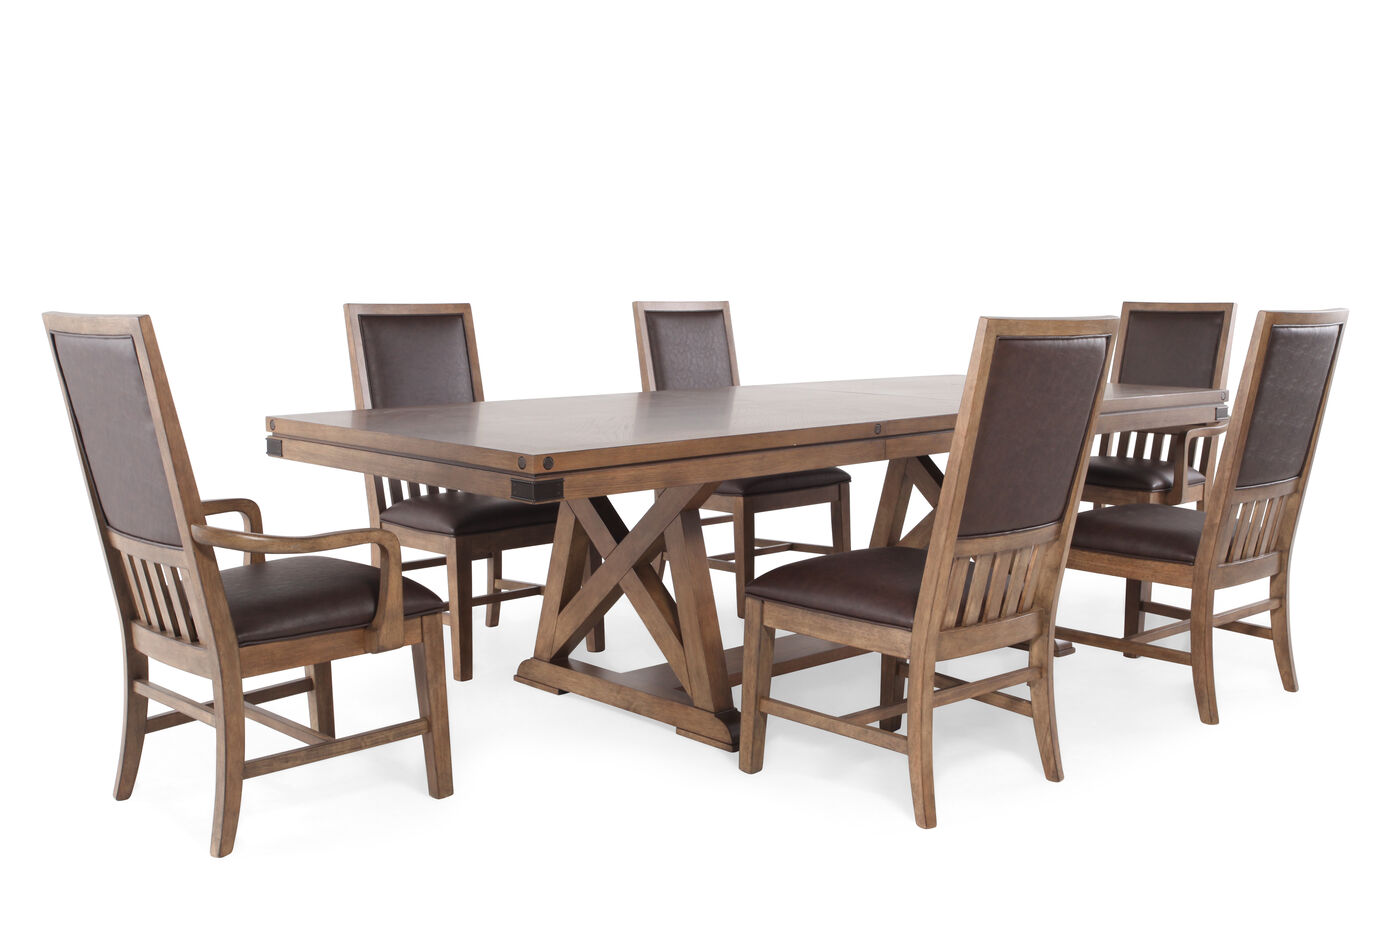 Legacy metalworks seven piece dining set mathis brothers for 7 piece dining room sets under 1000